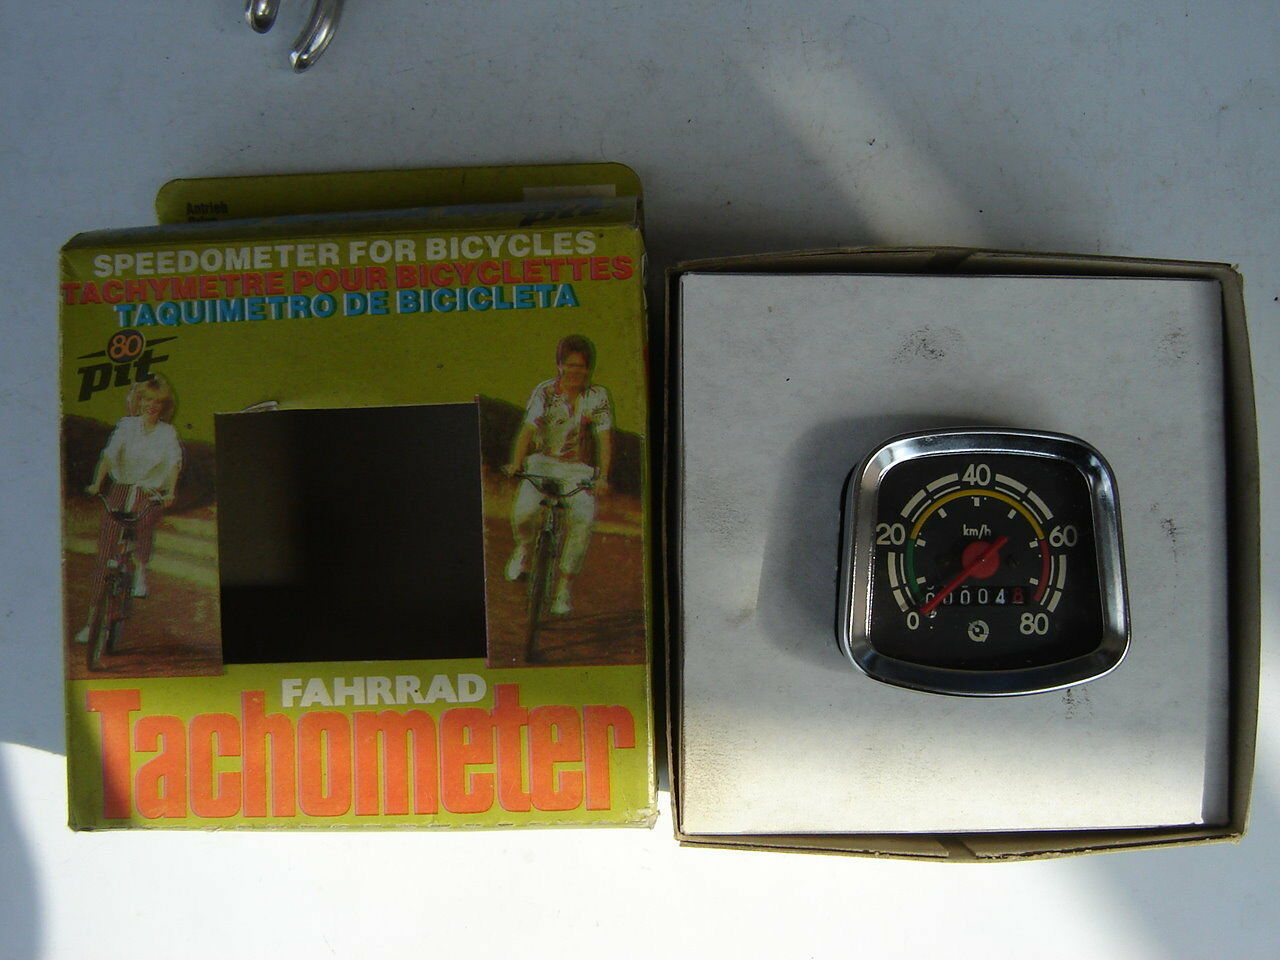 PIT VINTAGE SPEEDOMETER FOR BICYCLES - NOS - NIB